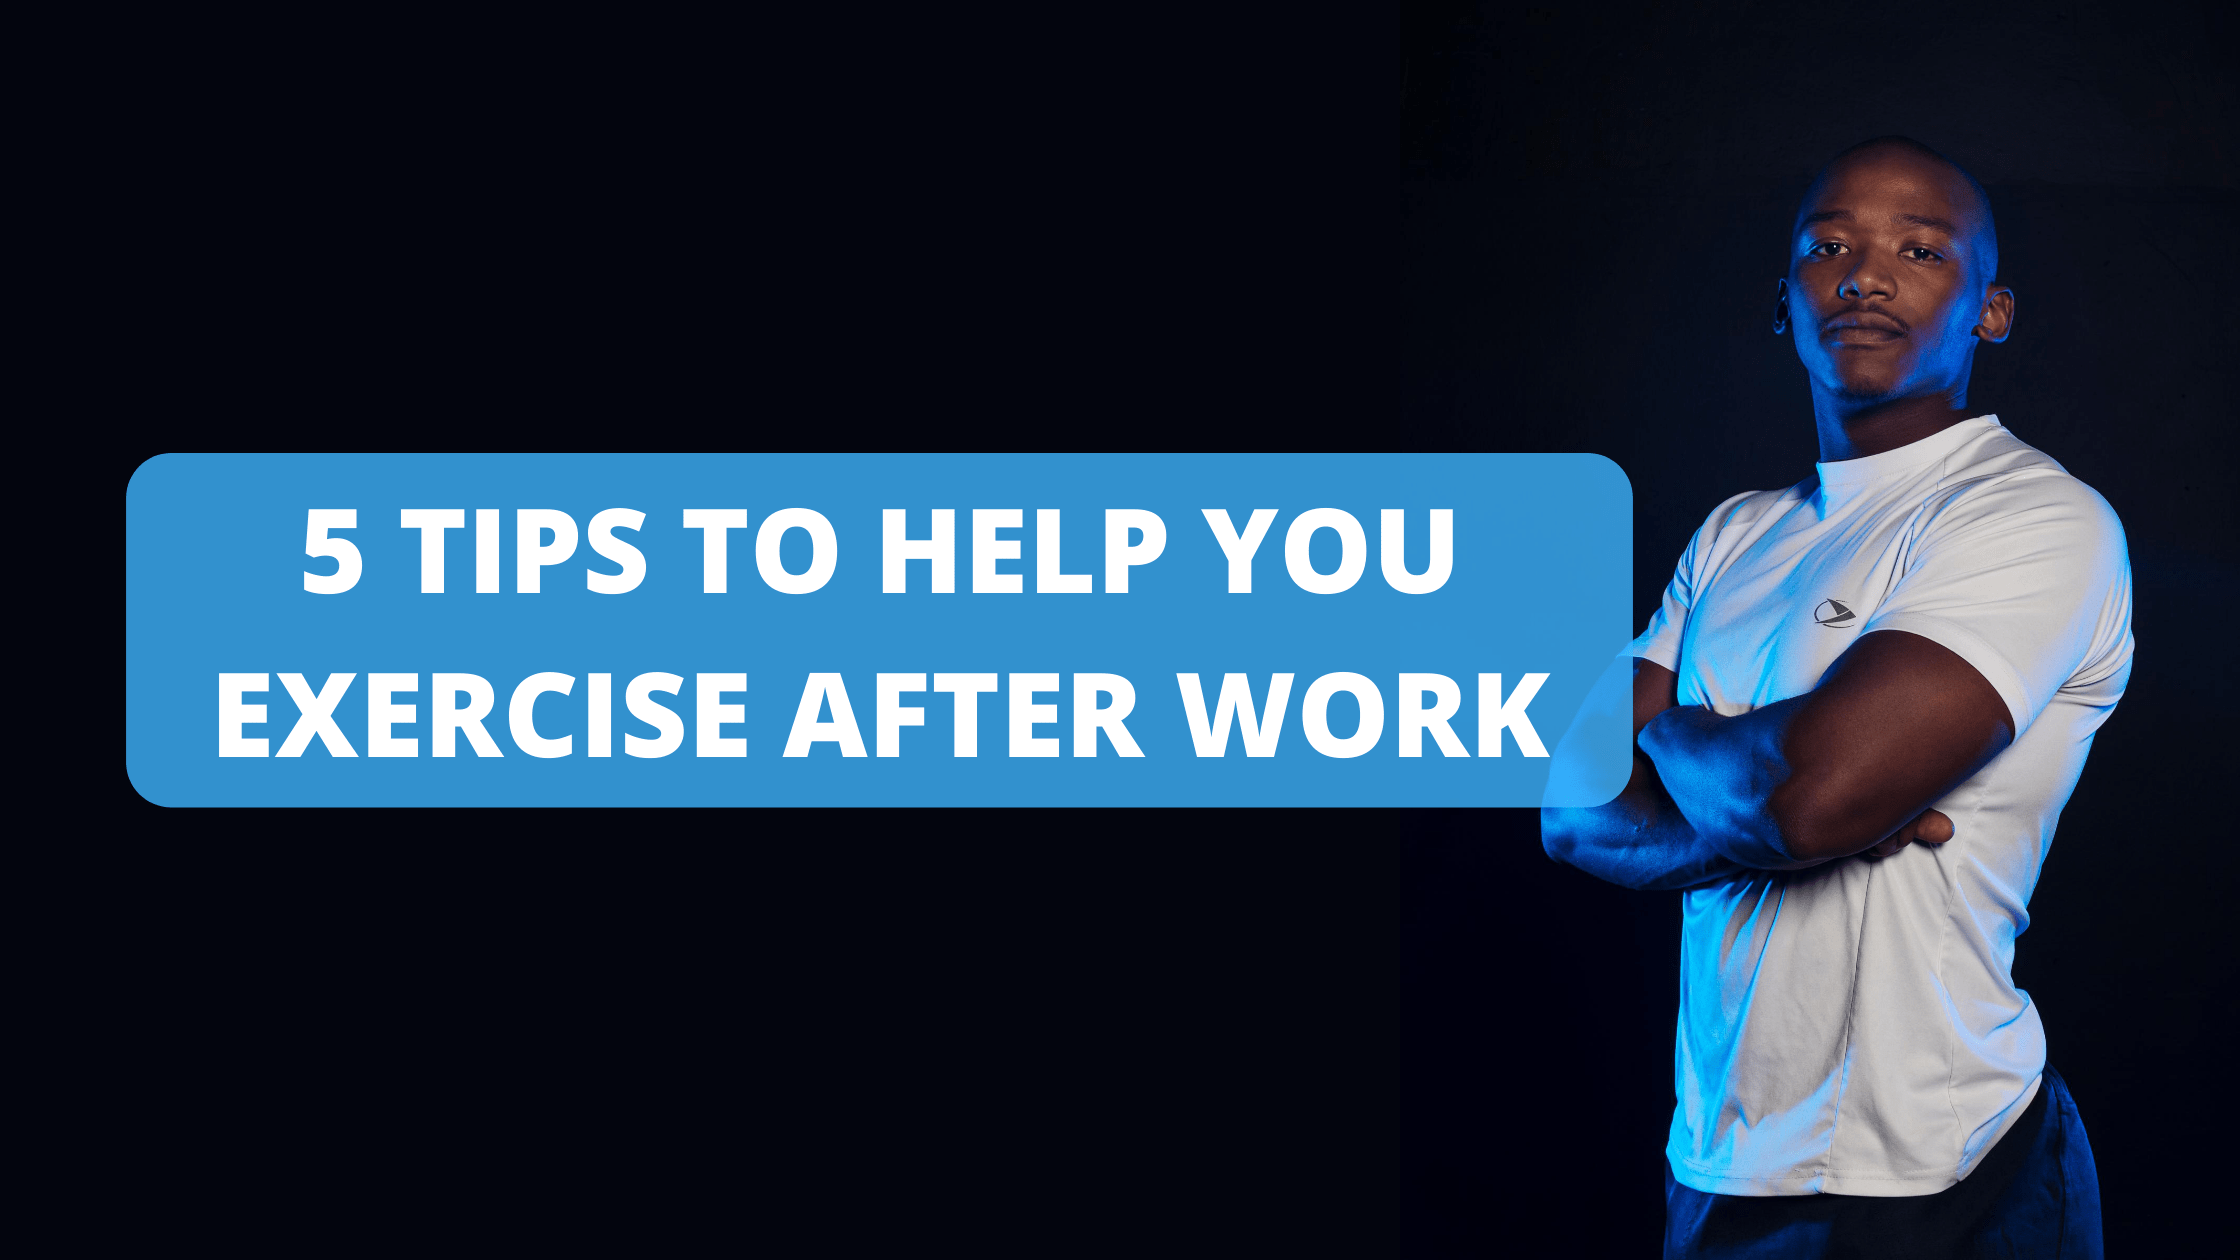 5 Tips to Help You Exercise After Work